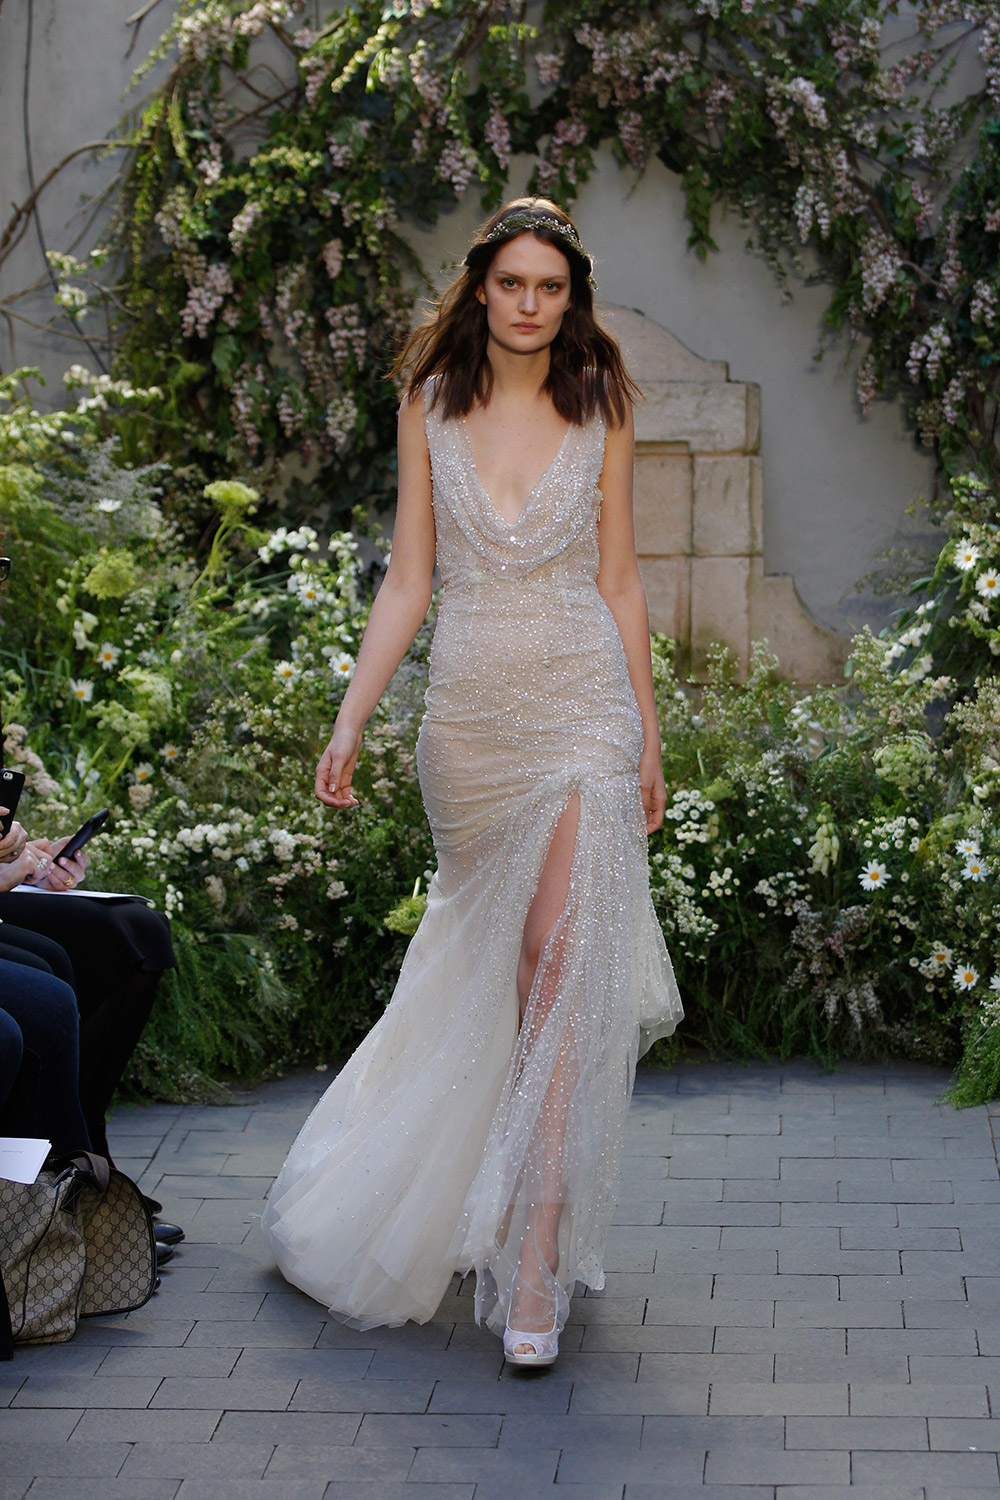 Diamond - Monique Lhuillier Spring 2017 Bridal Collection. www.theweddingnotebook.com